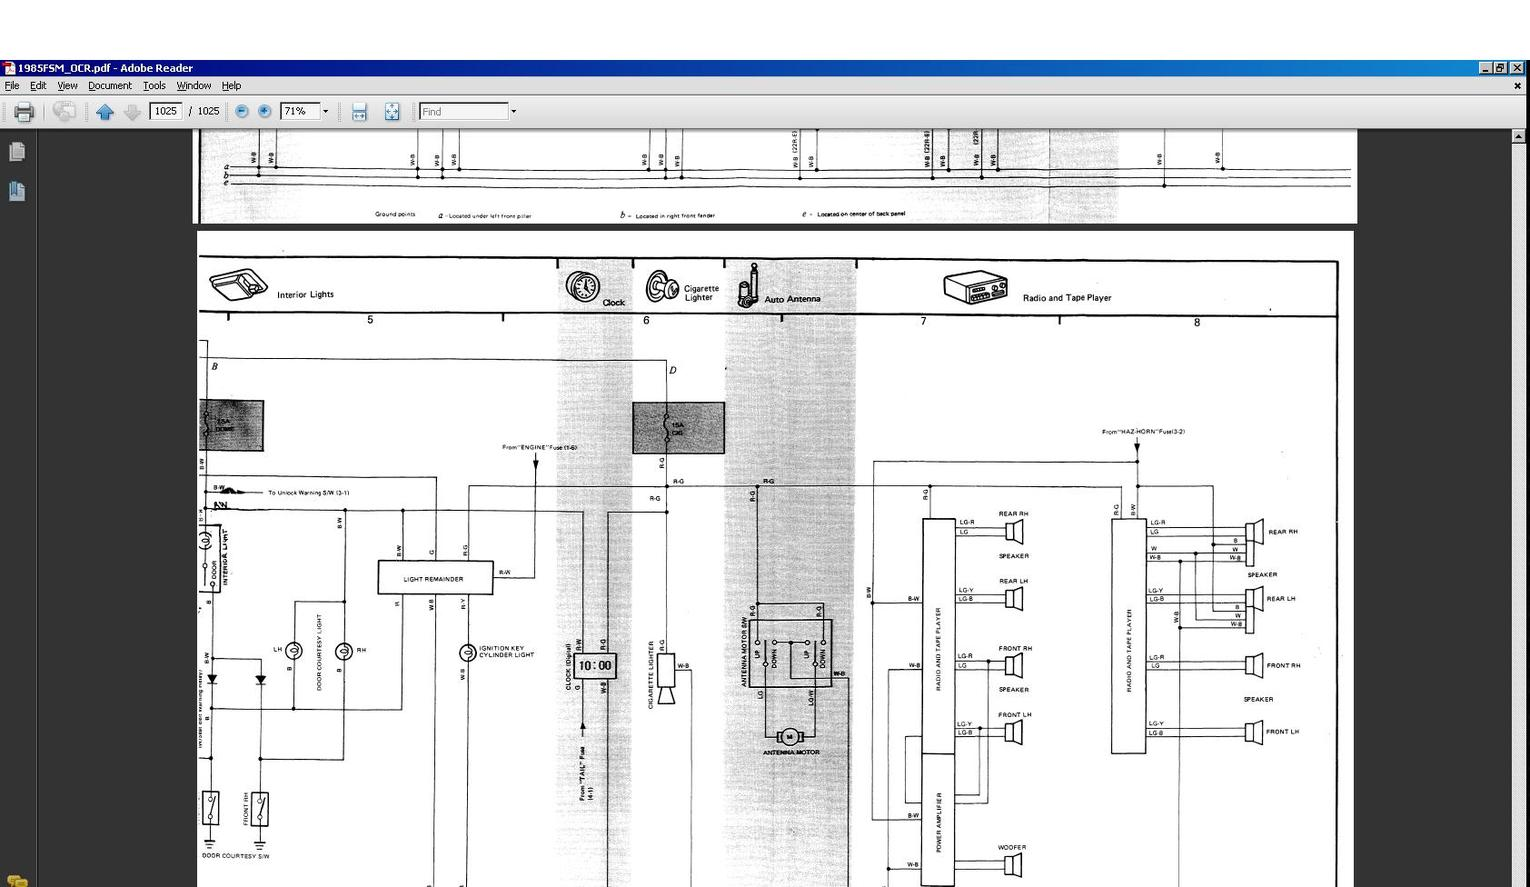 7mgte vacuum diagram, 7mgte wire harness diagram, engine compartment diagram, on 89 7mge engine wiring diagram